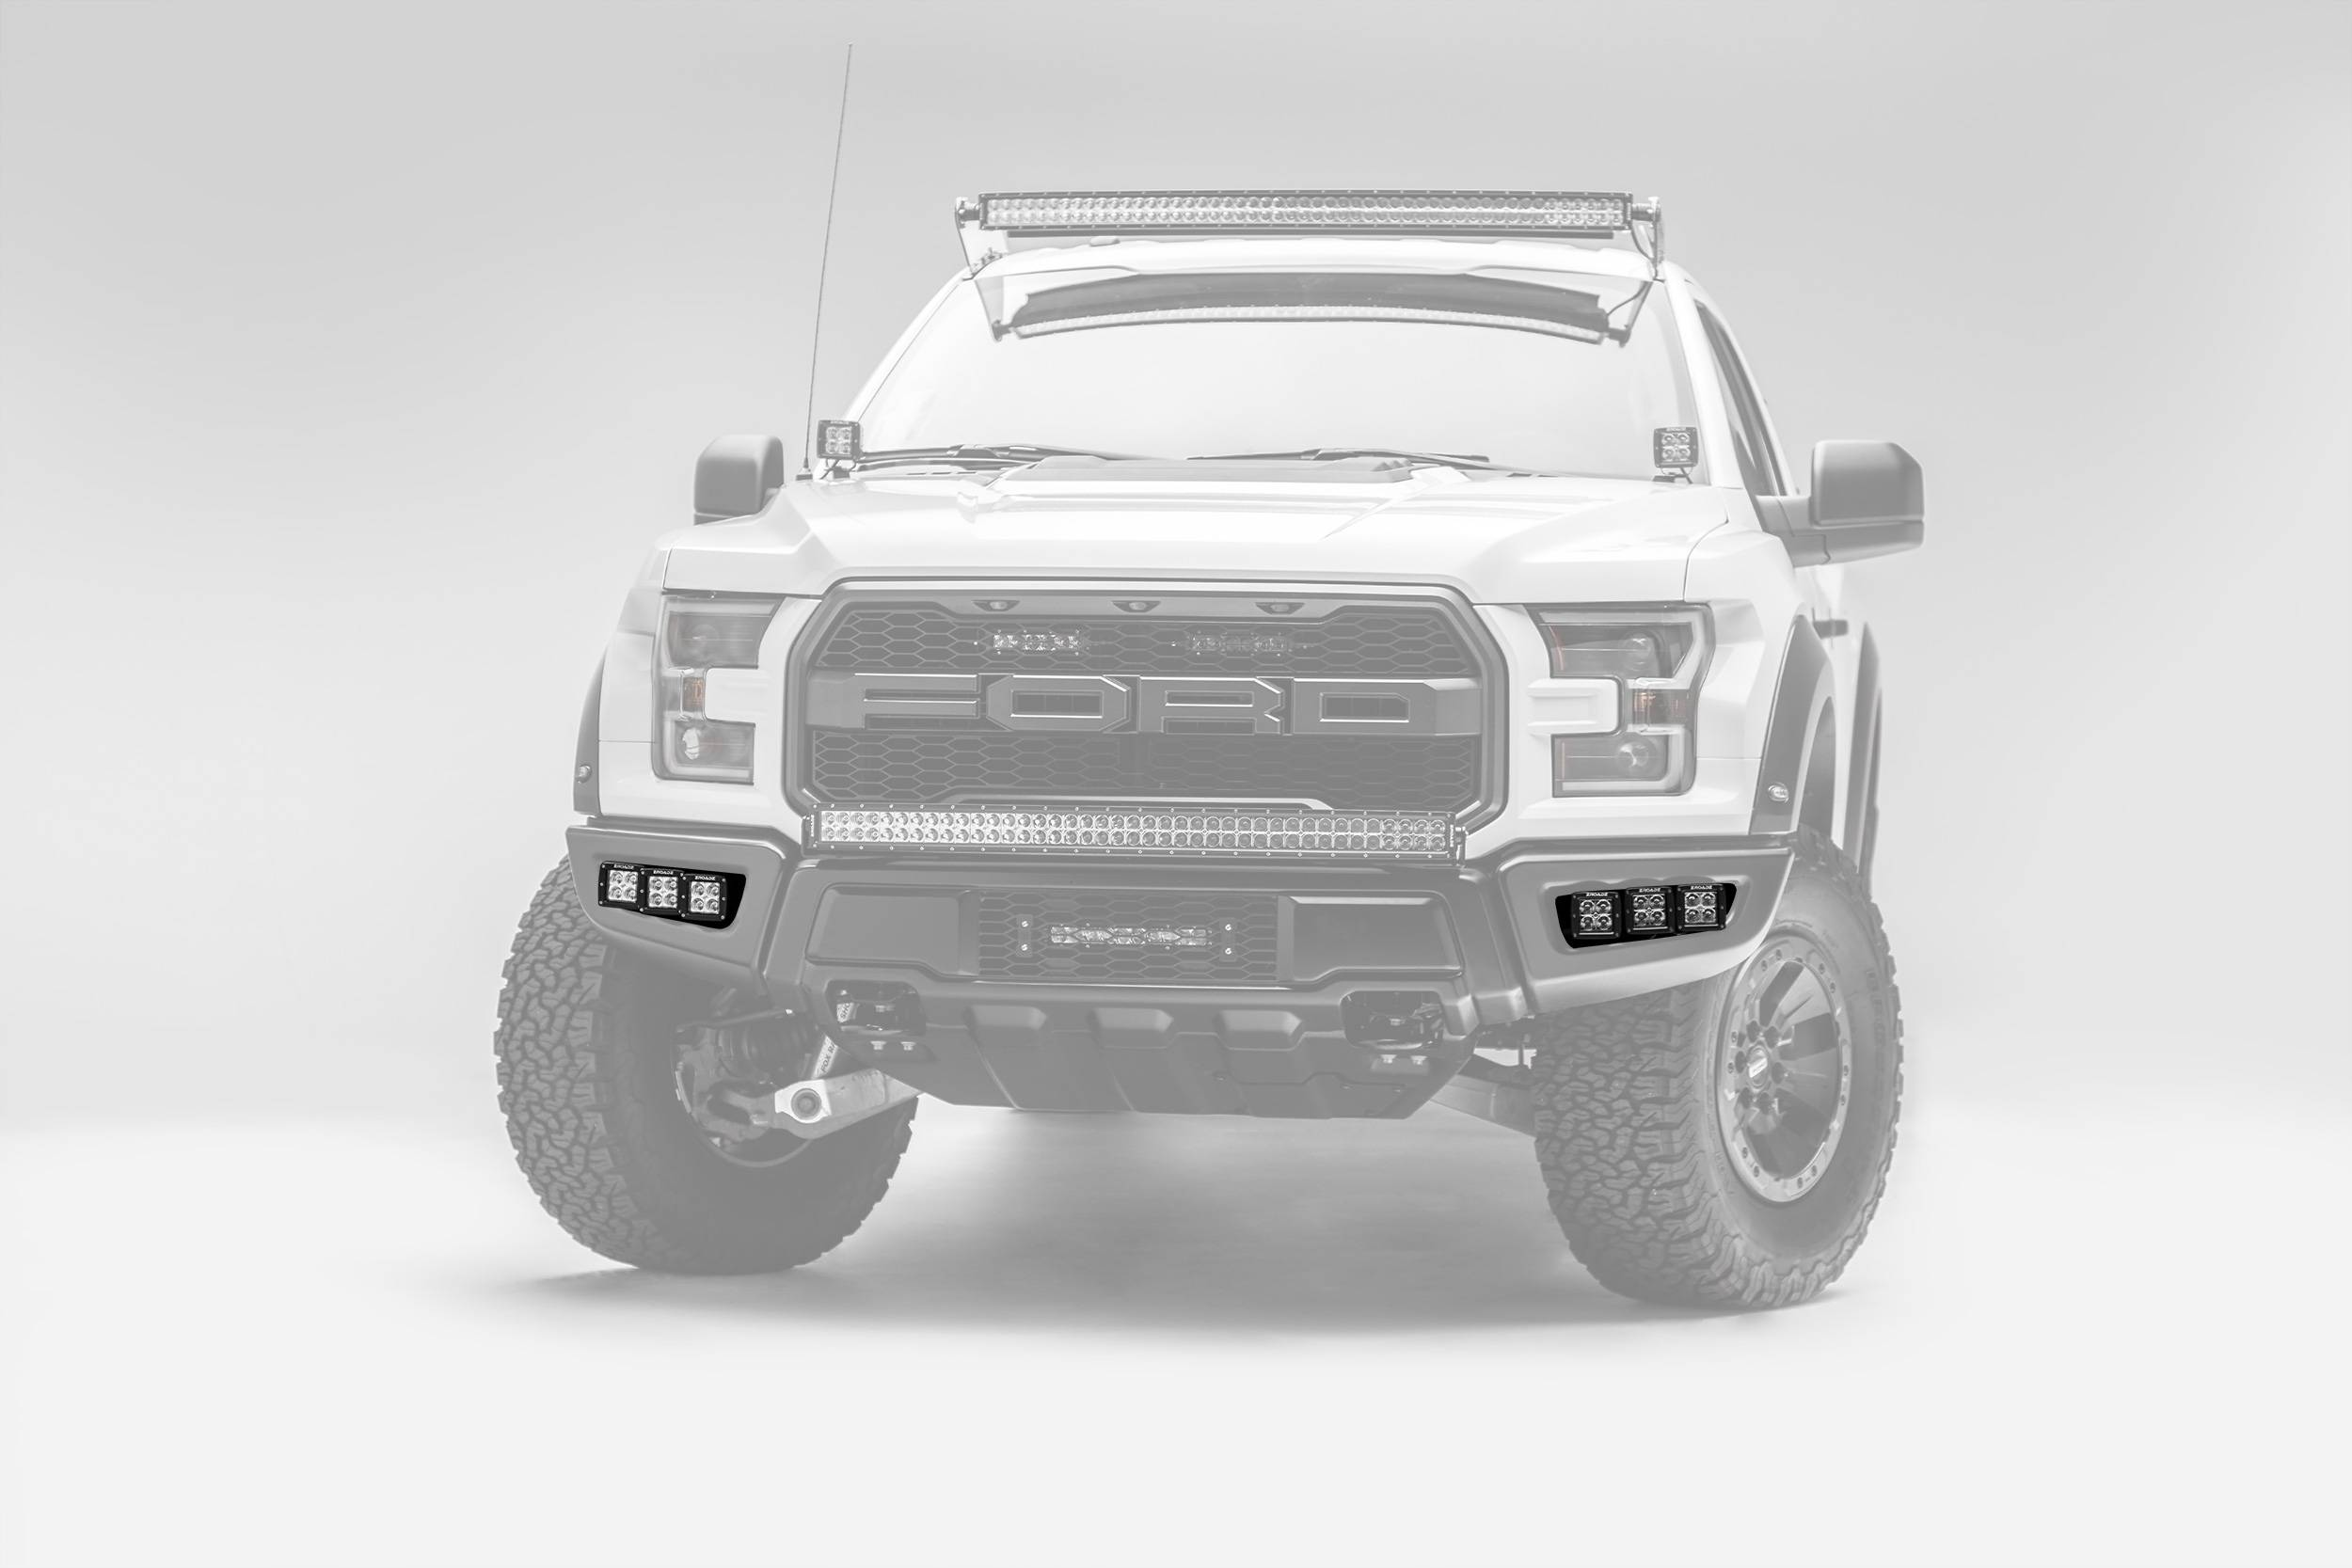 2017-2019 Ford F-150 Raptor Front Bumper OEM Fog LED Kit, Incl. (6) 3 Inch LED Pod Lights - PN #Z325652-KIT